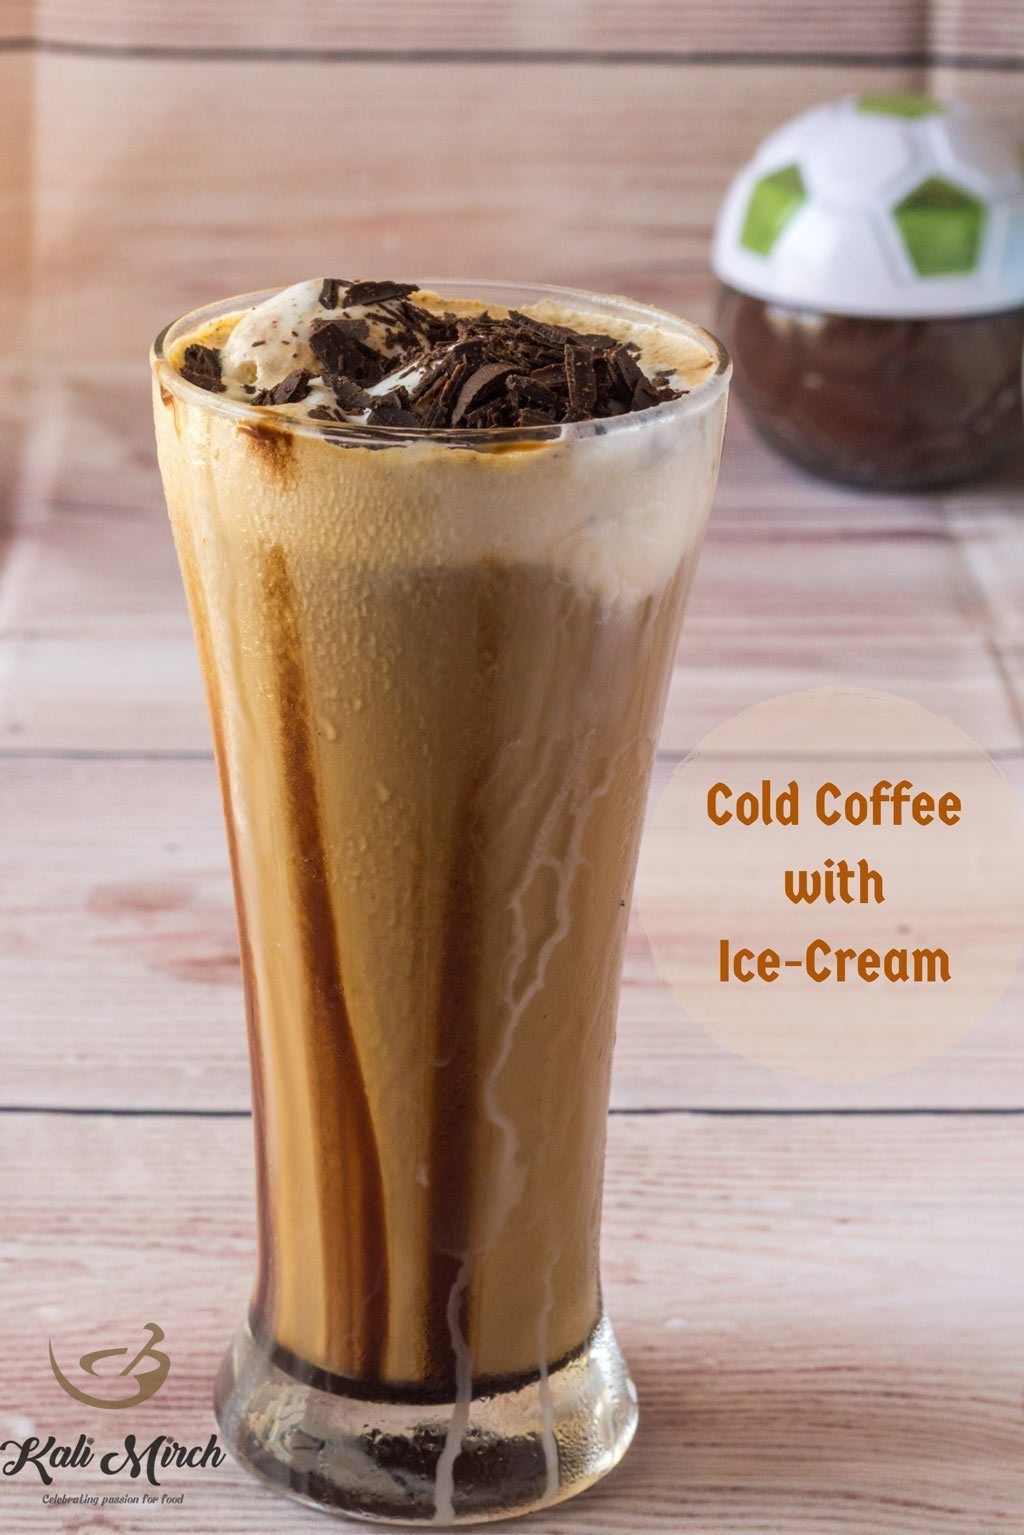 Cold Coffee with Ice-Cream - Kali Mirch - by Smita